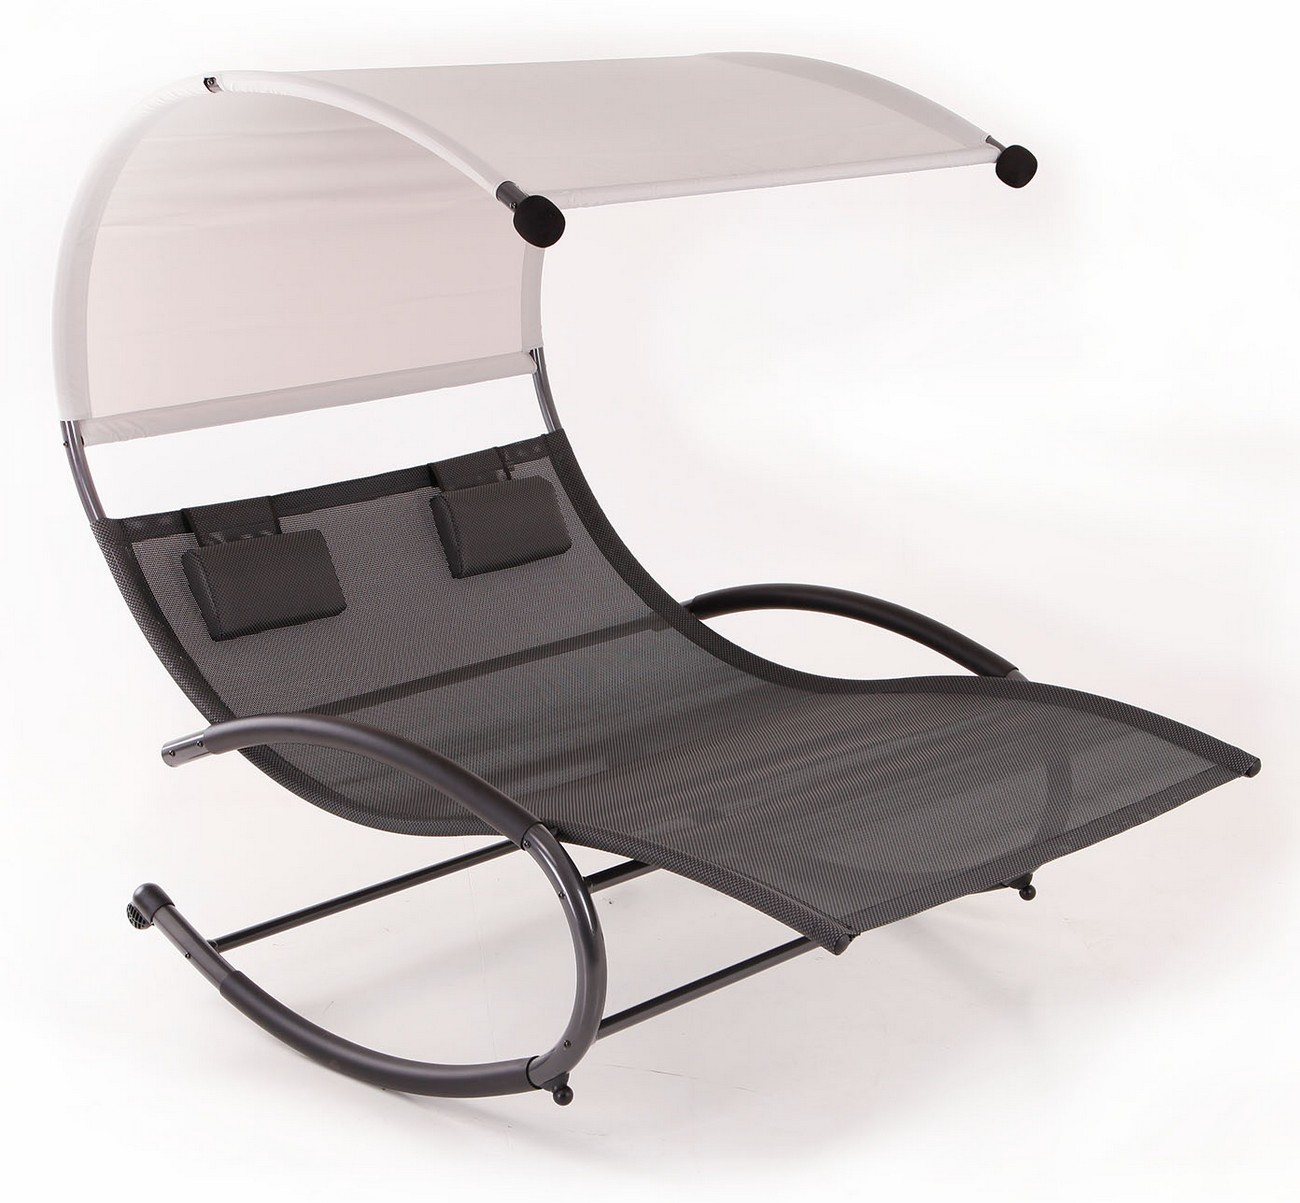 Chaise Rocking Chair Double Chaise Rocker Patio Furniture Seat Chair Canopy